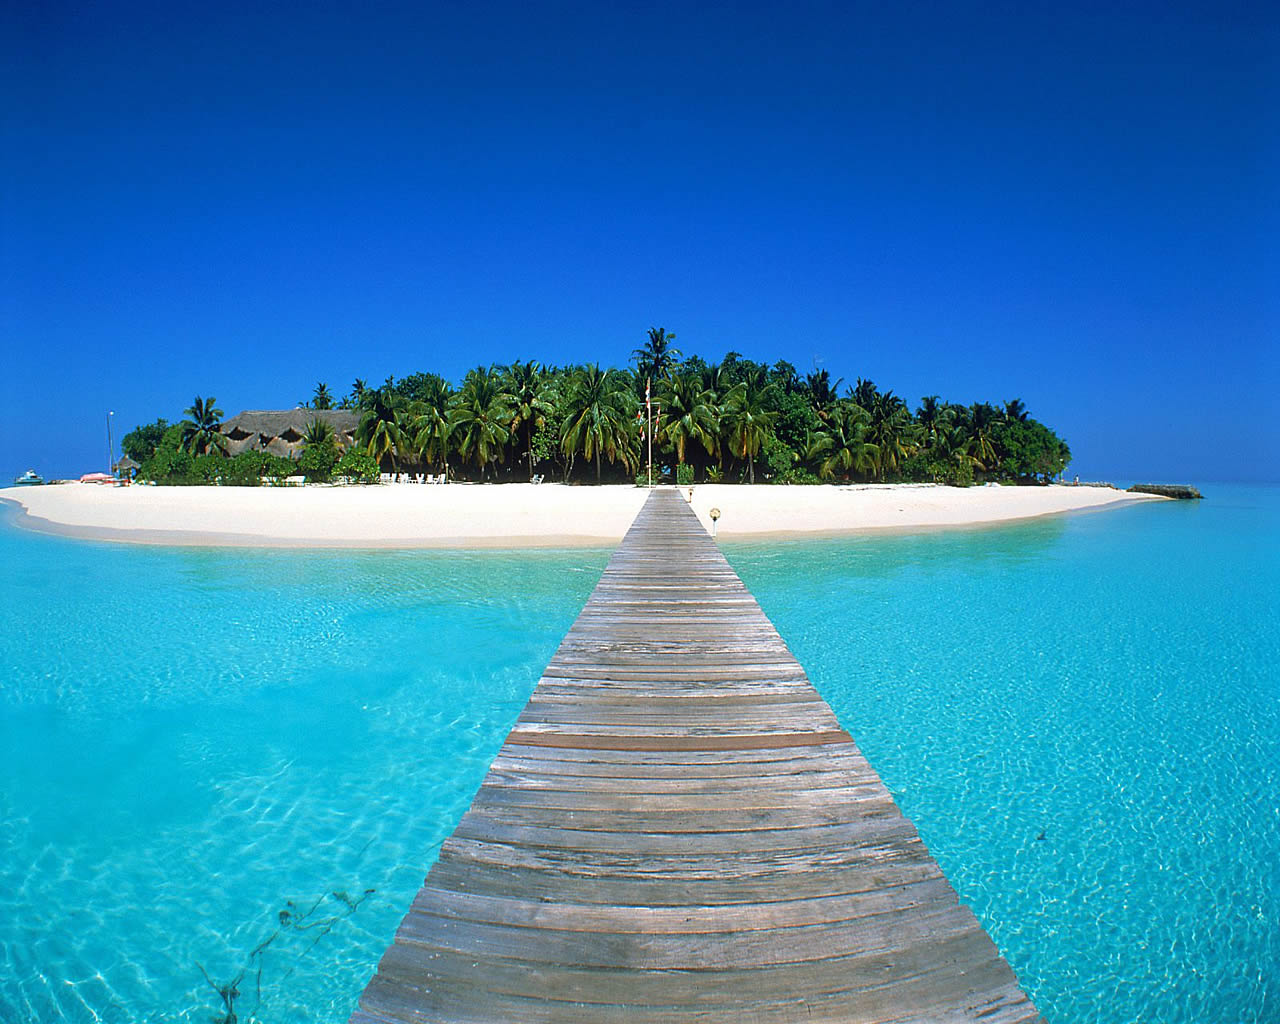 Tropical Island Wallpaper 10610 Hd Wallpapers in Beach   Imagescicom 1280x1024